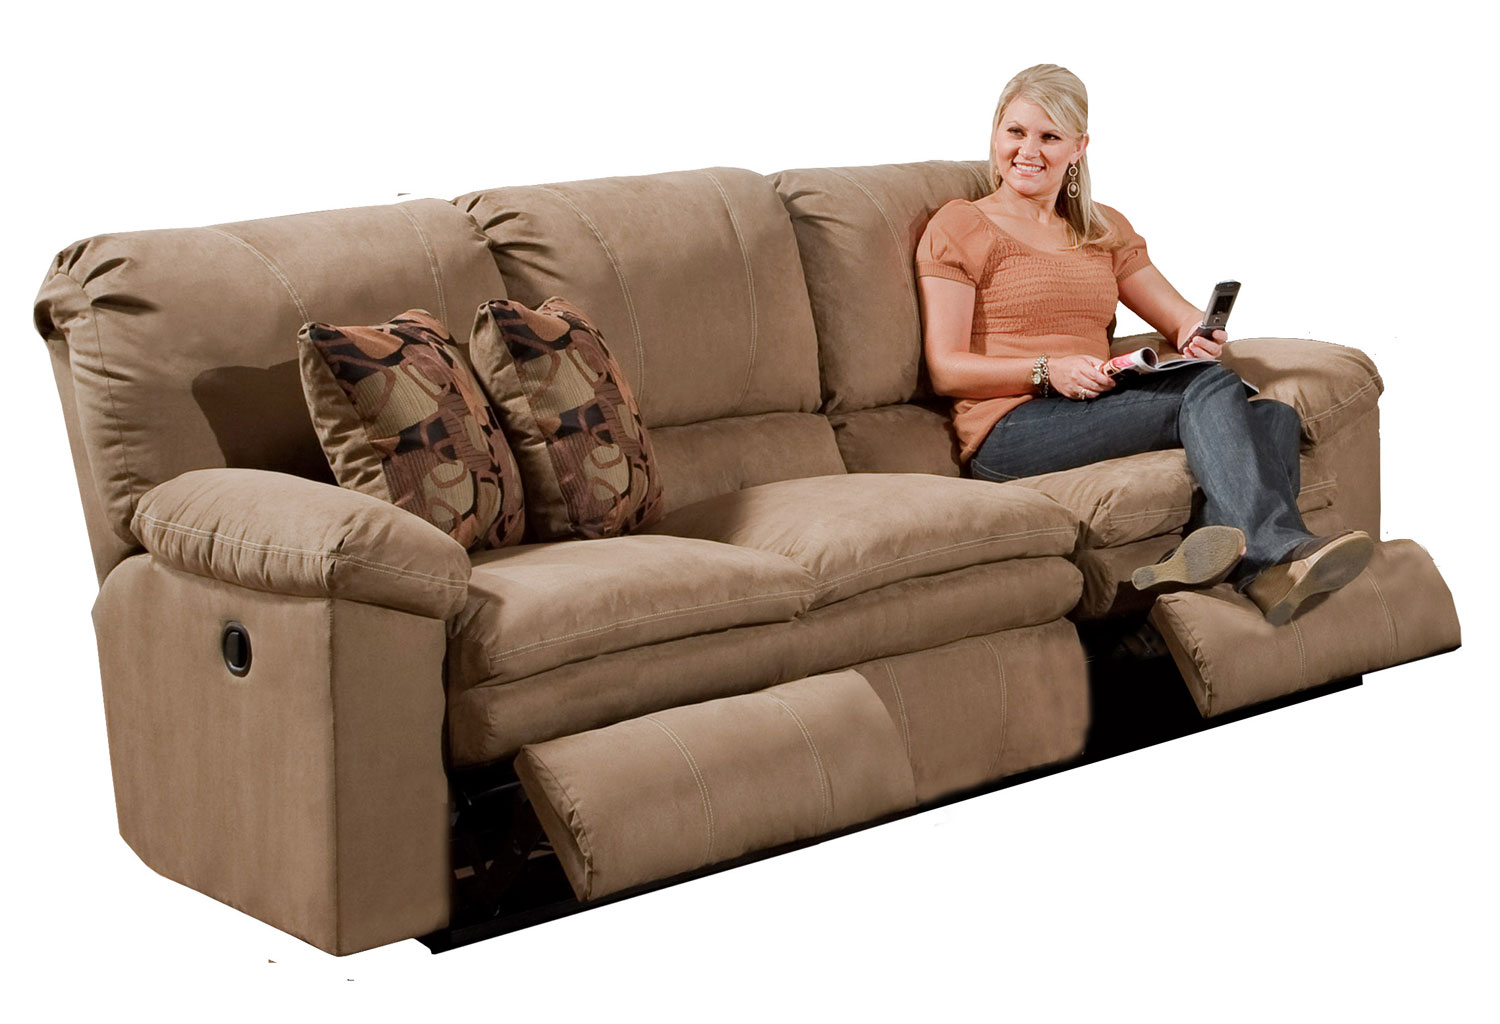 Catnapper Impulse Power Reclining Sofa Cafe Cn 61241 Cafe At